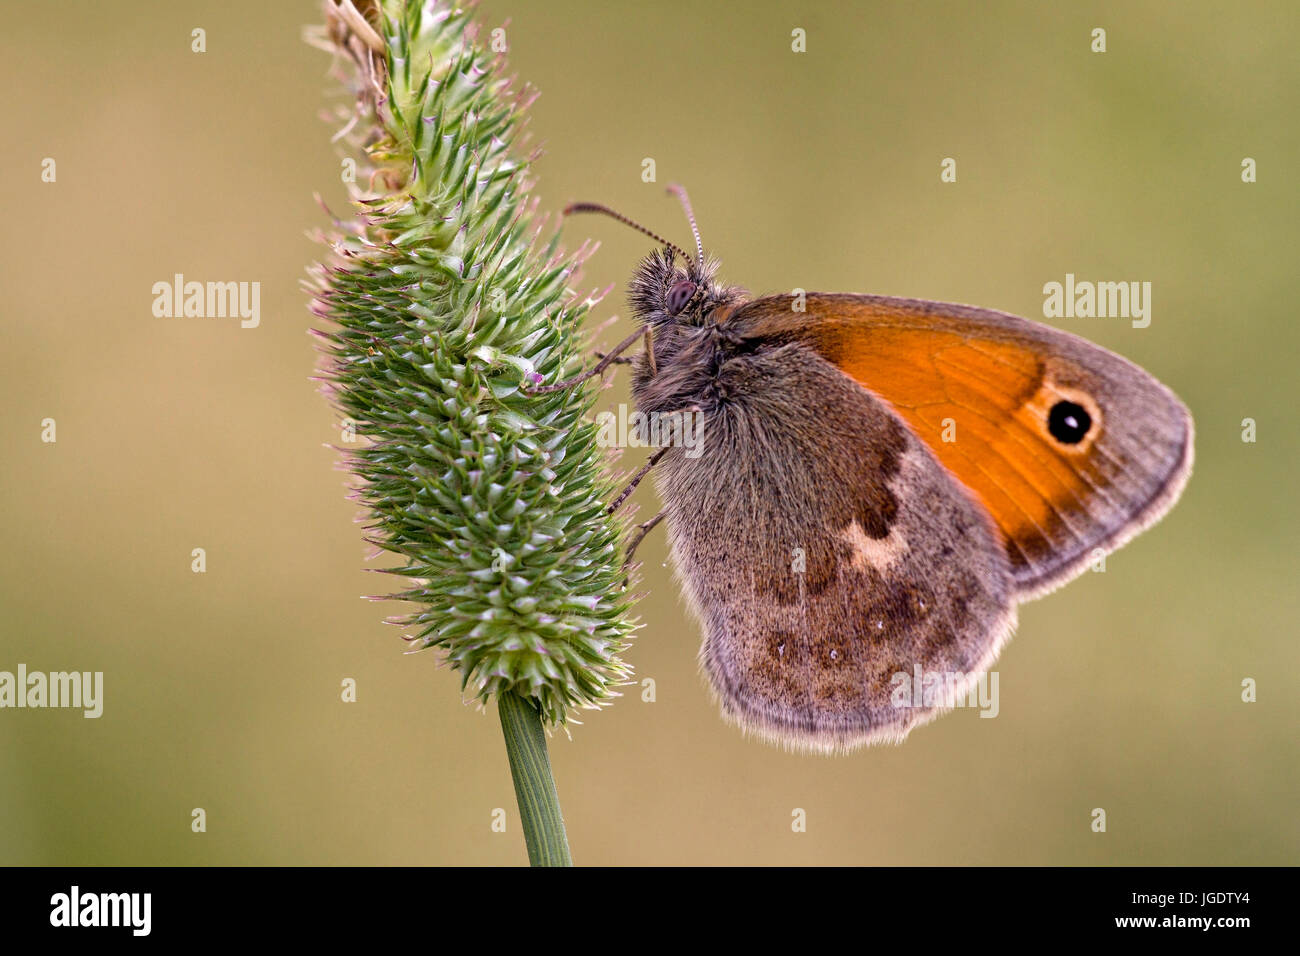 Small little meadow birds, Coenonympha pamphilus, Kleines Wiesenvögelchen (Coenonympha pamphilus) - Stock Image